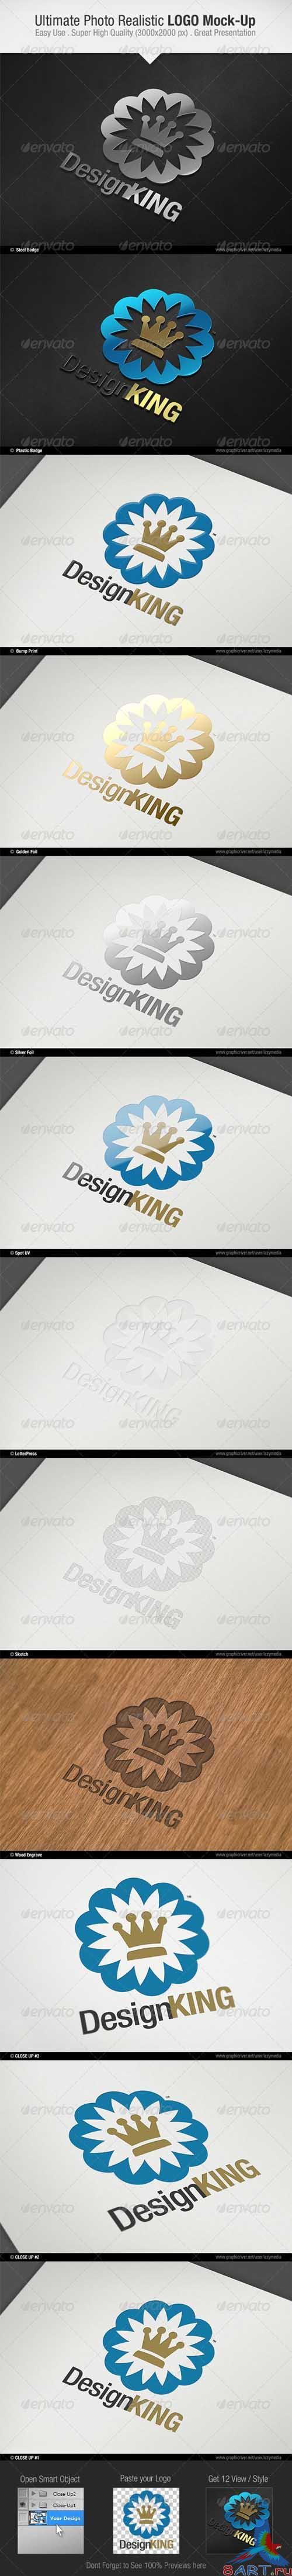 GraphicRiver Ultimate Photo Realistic LOGO Mock-Up - REUPLOAD